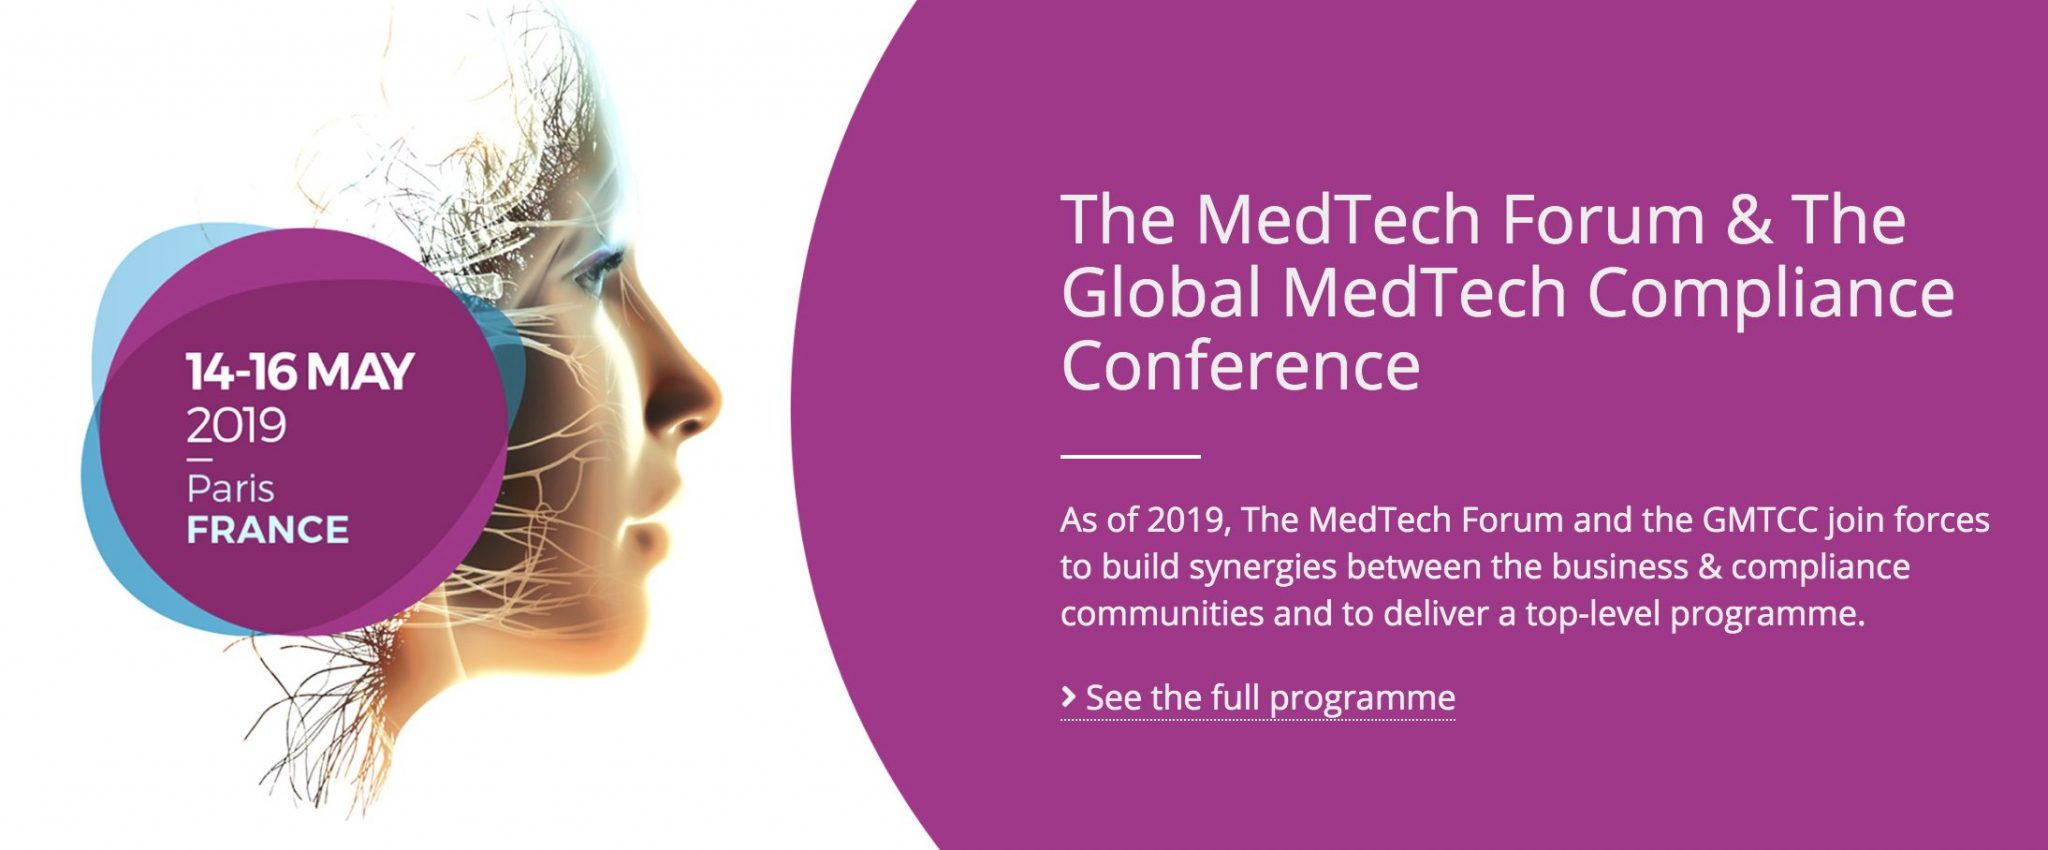 Meet the NOBEL Project at MedTech Forum 2019 in Paris! (May 15-16)